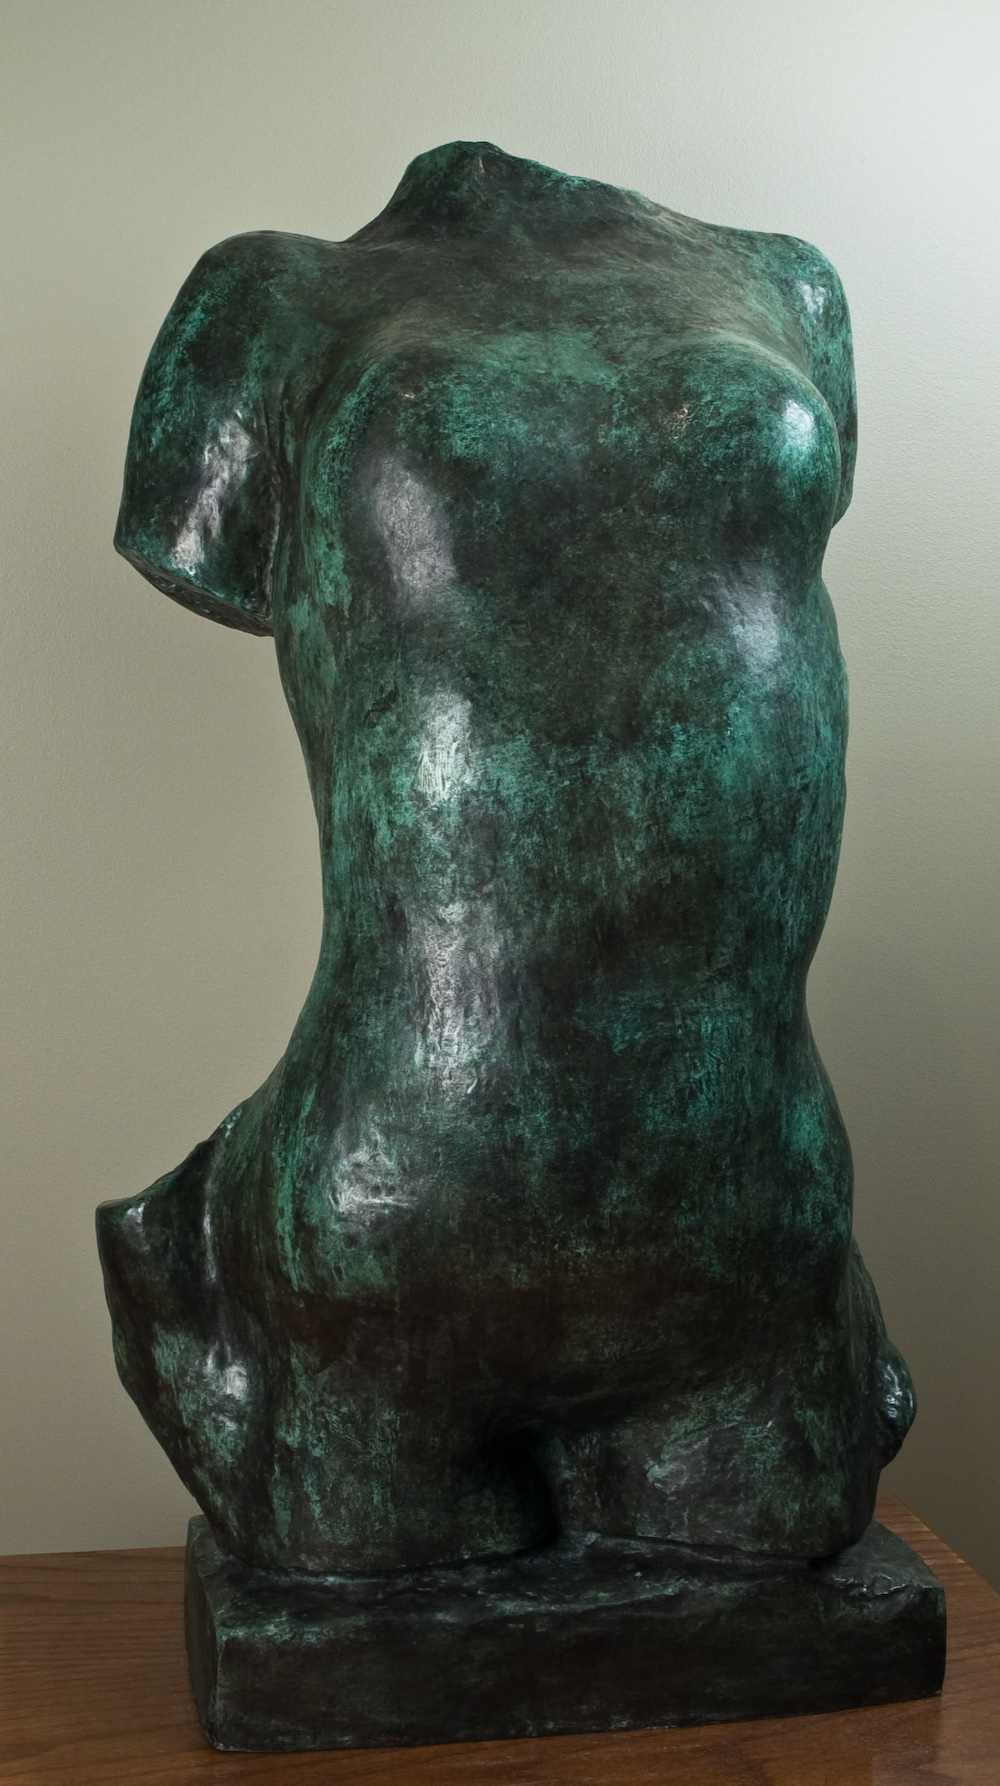 Torso of a Young Woman by Auguste Rodin